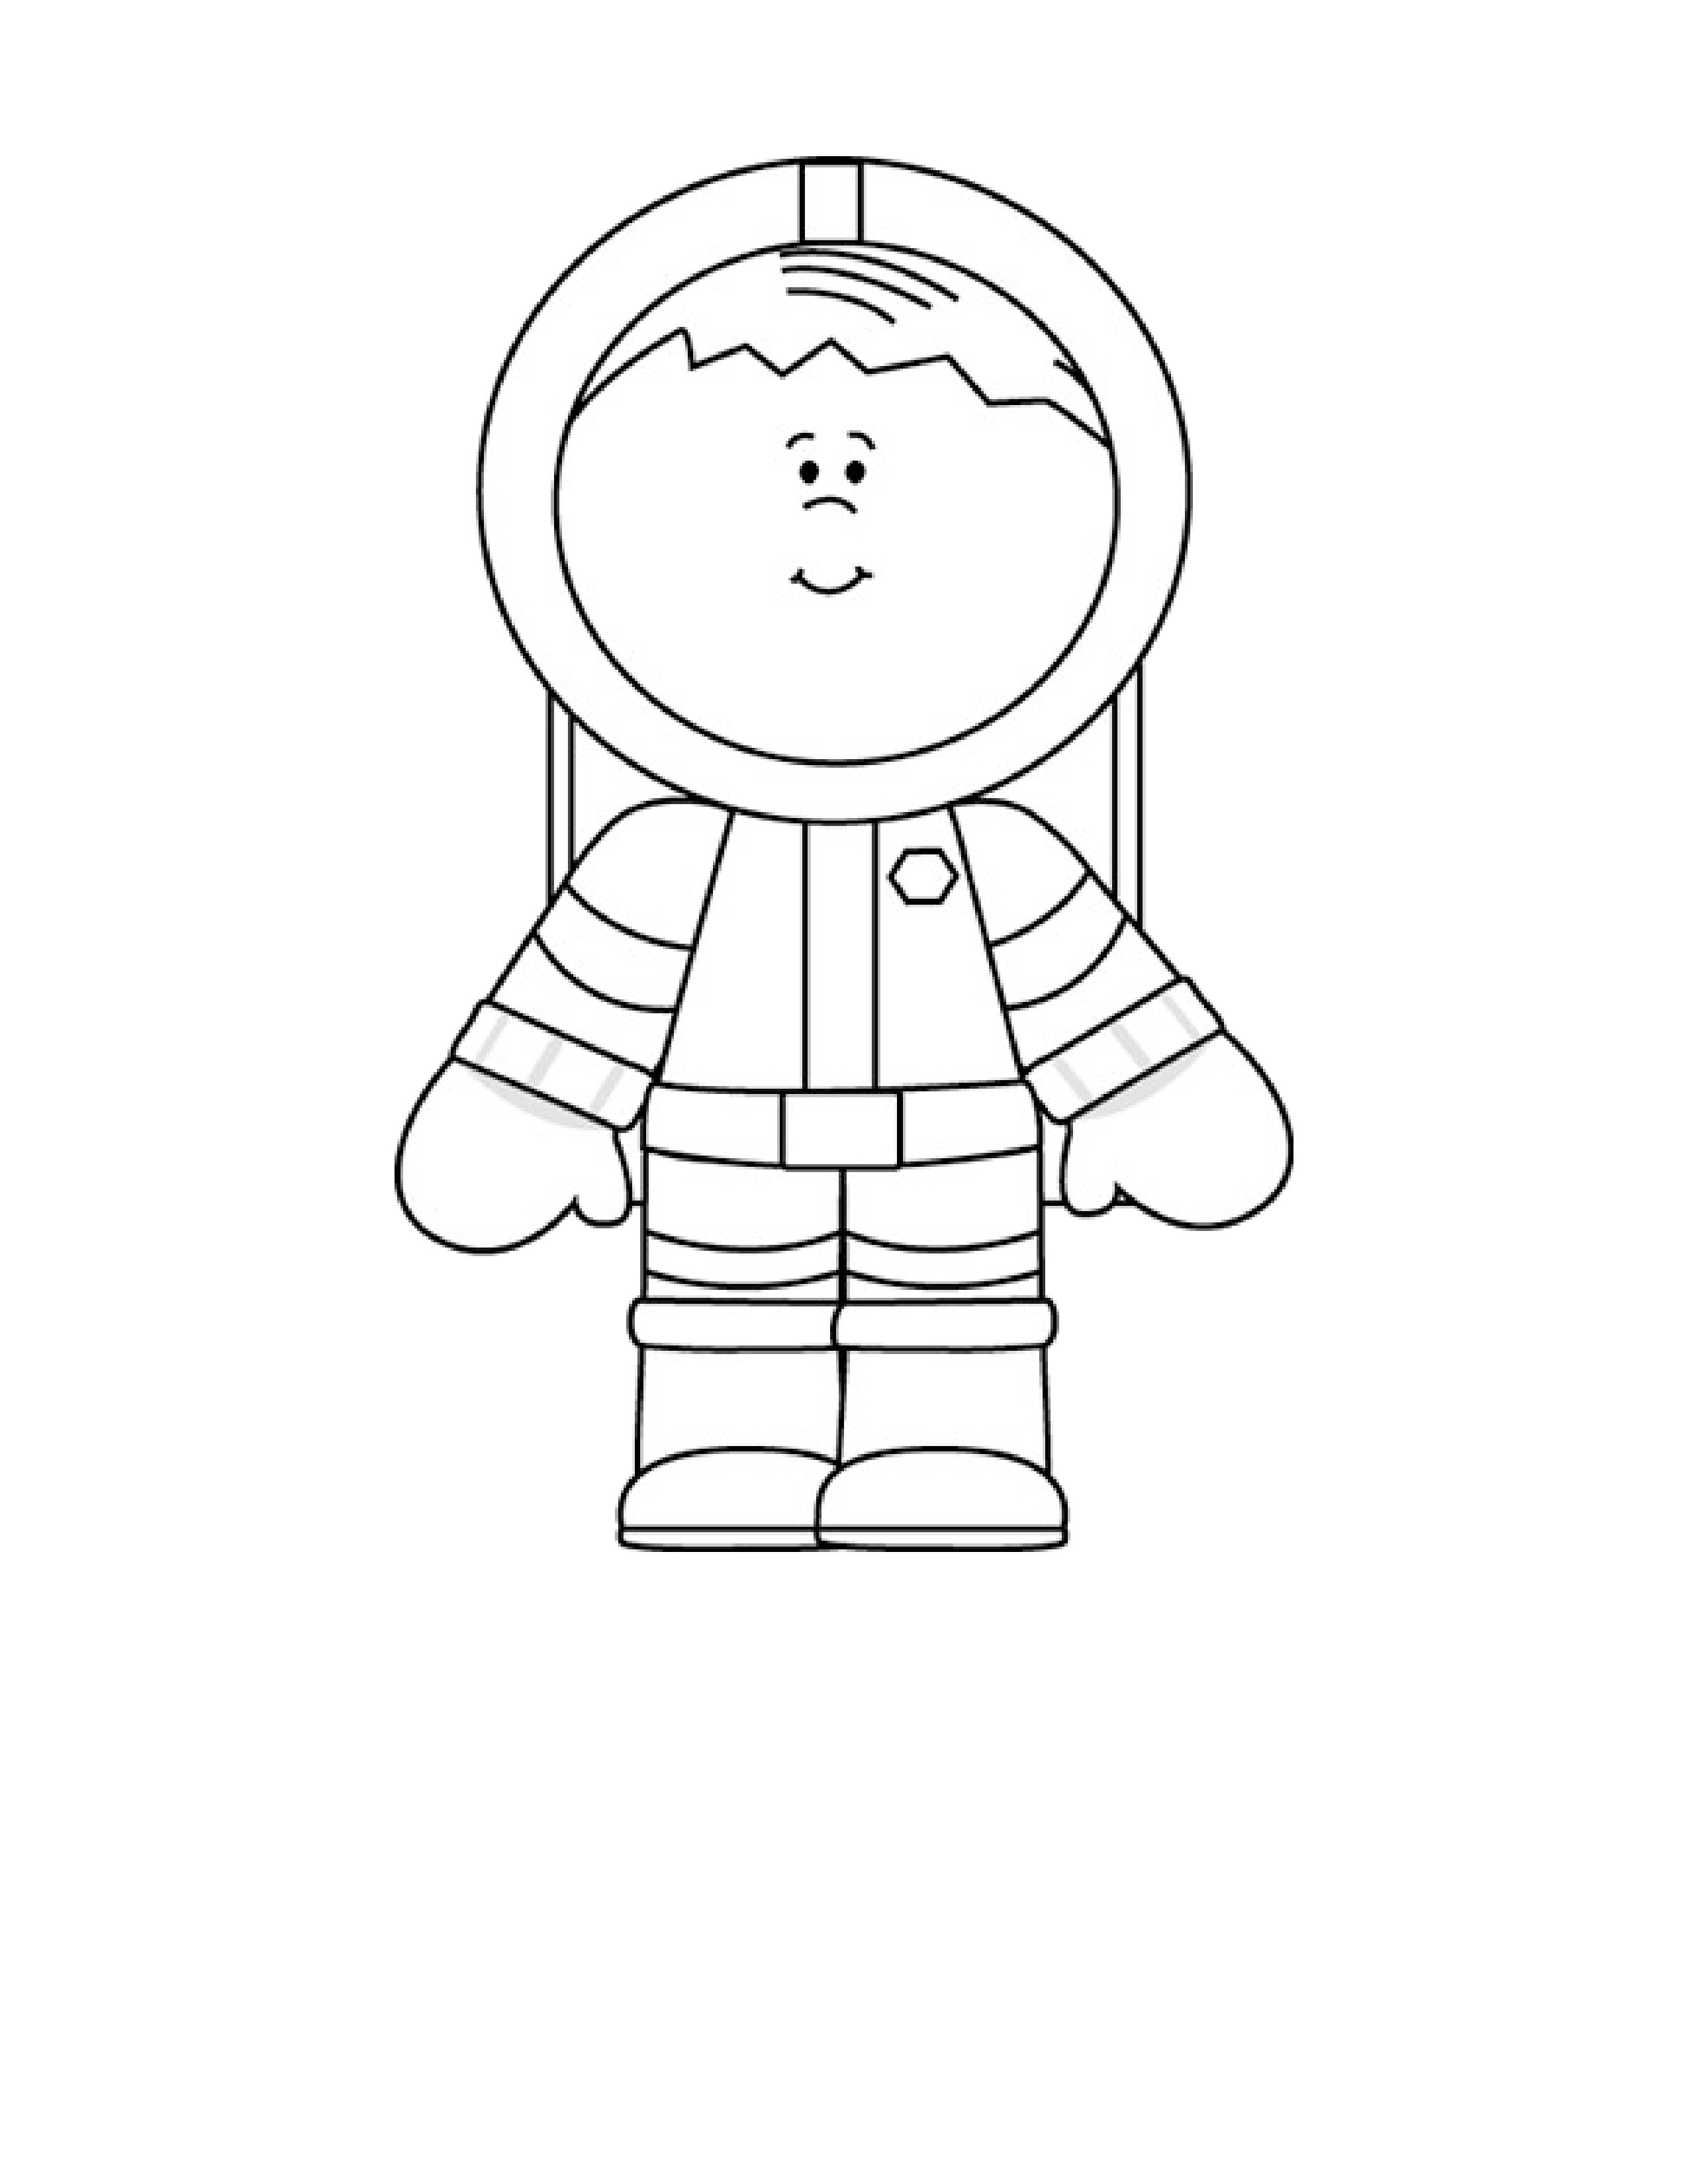 coloring picture of astronaut an astronaut in complete spacesuit coloring page picture astronaut coloring of